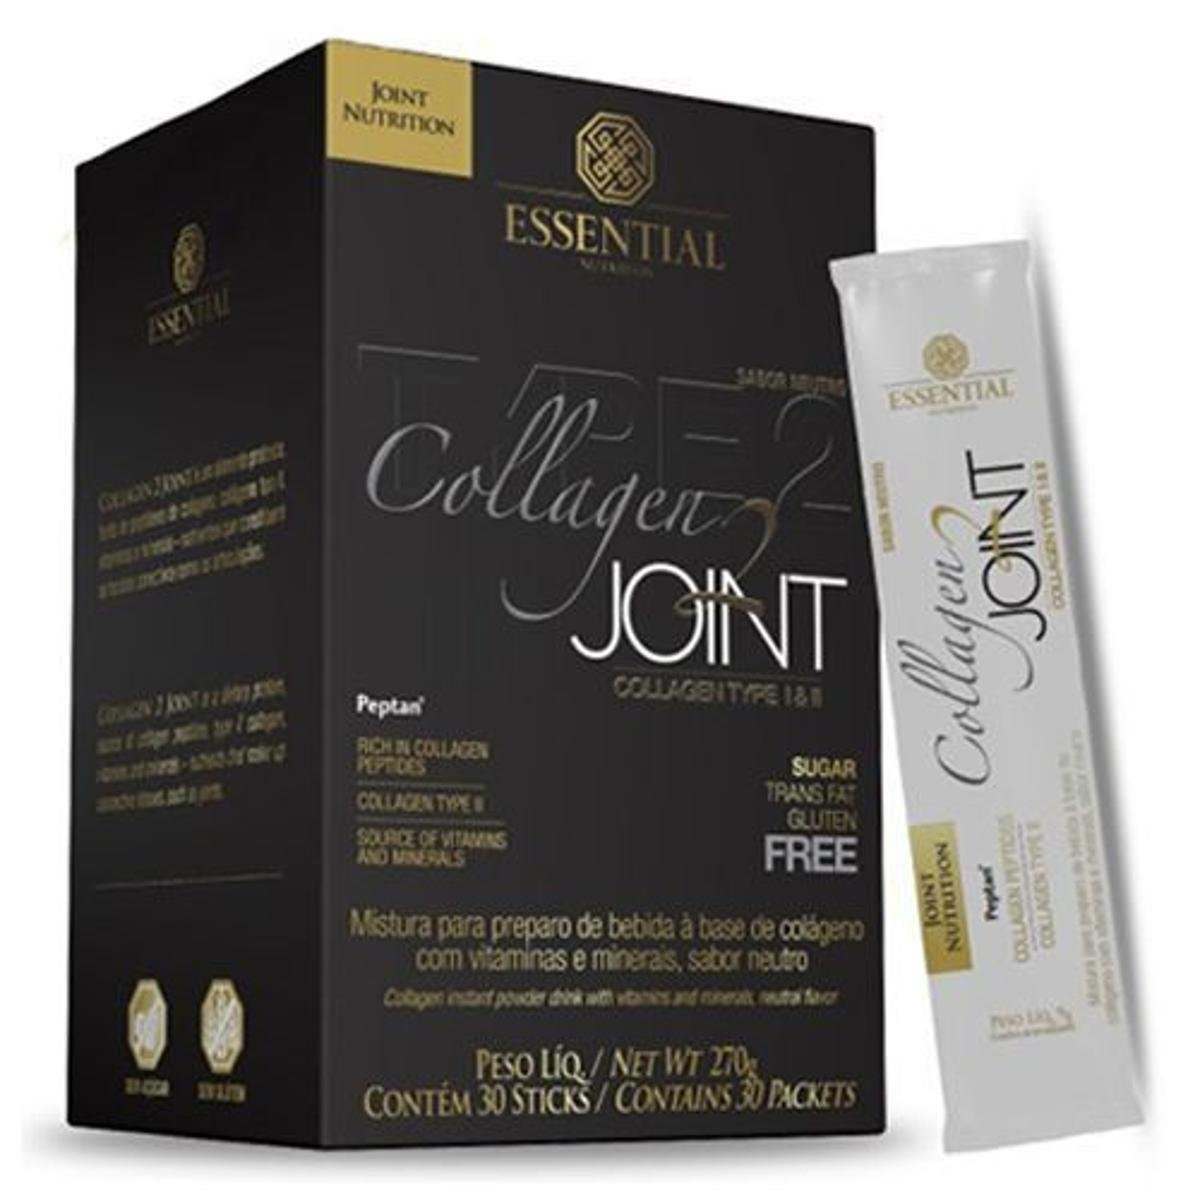 Collagen Joint Neutro Display 270G 30 Sticks